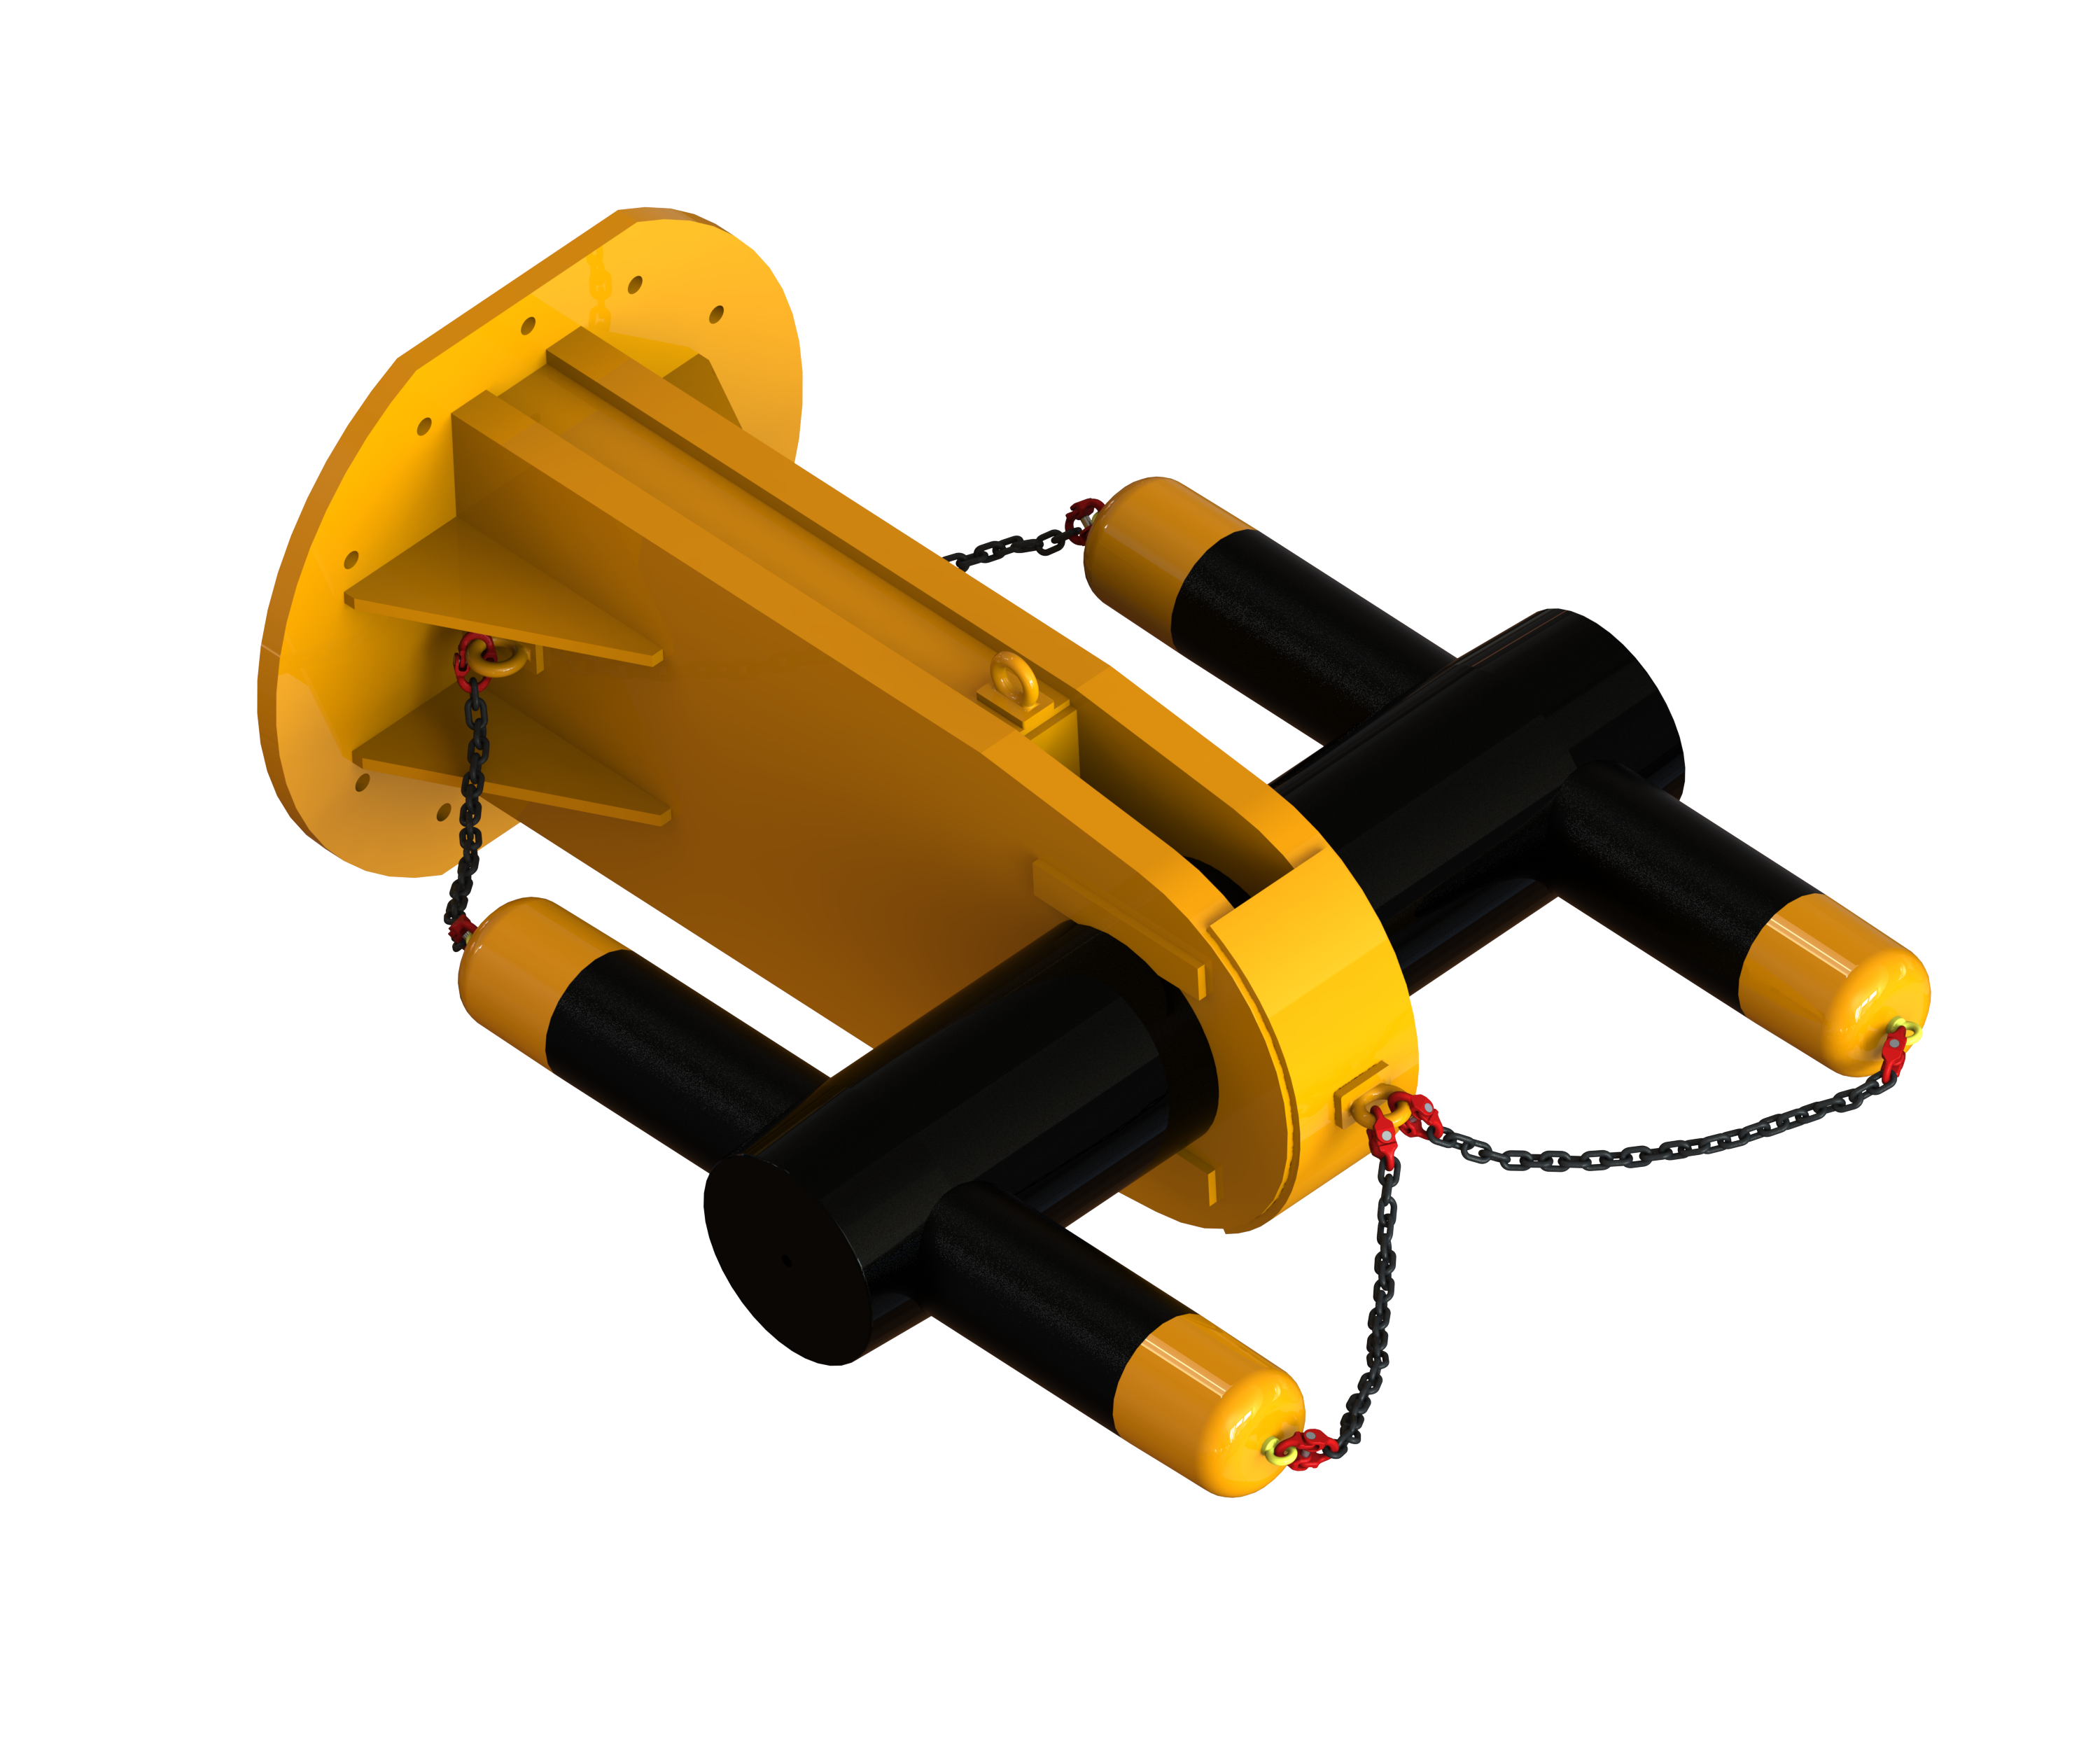 Modulift Launches Trunnion Modular Spreader Beam for Heavy Lift Applications